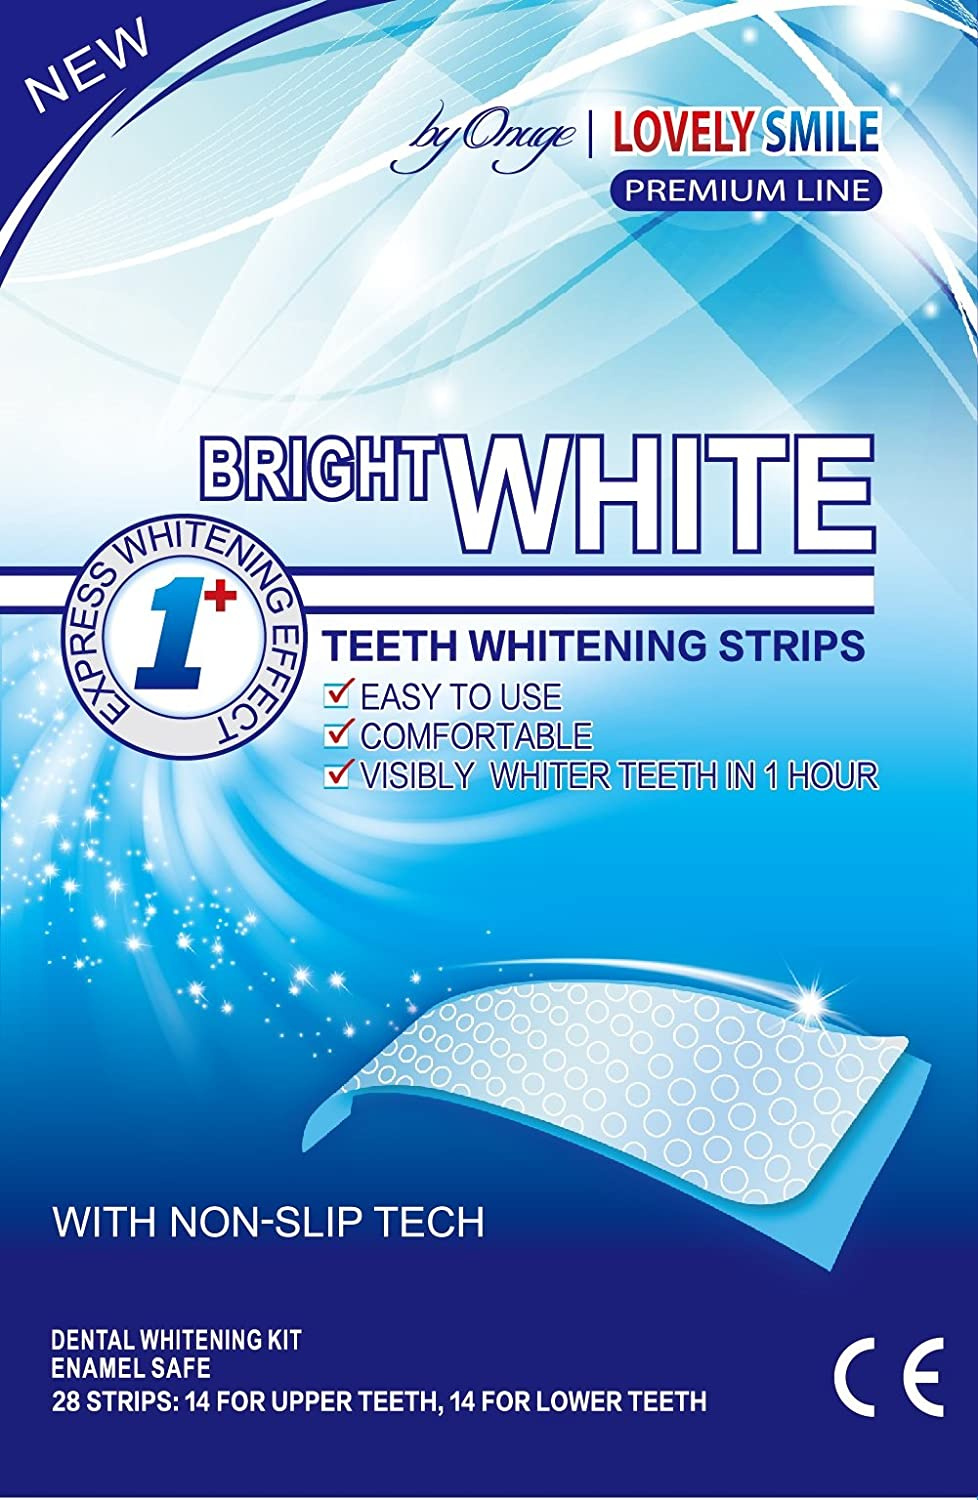 28 Teeth Whitening Strips | Lovely Smile Premium Line Professional Quality - NEW Non-Slip Tech - Teeth Whitening Kit - Tooth Whitening - Express Whitening - Whiter Teeth